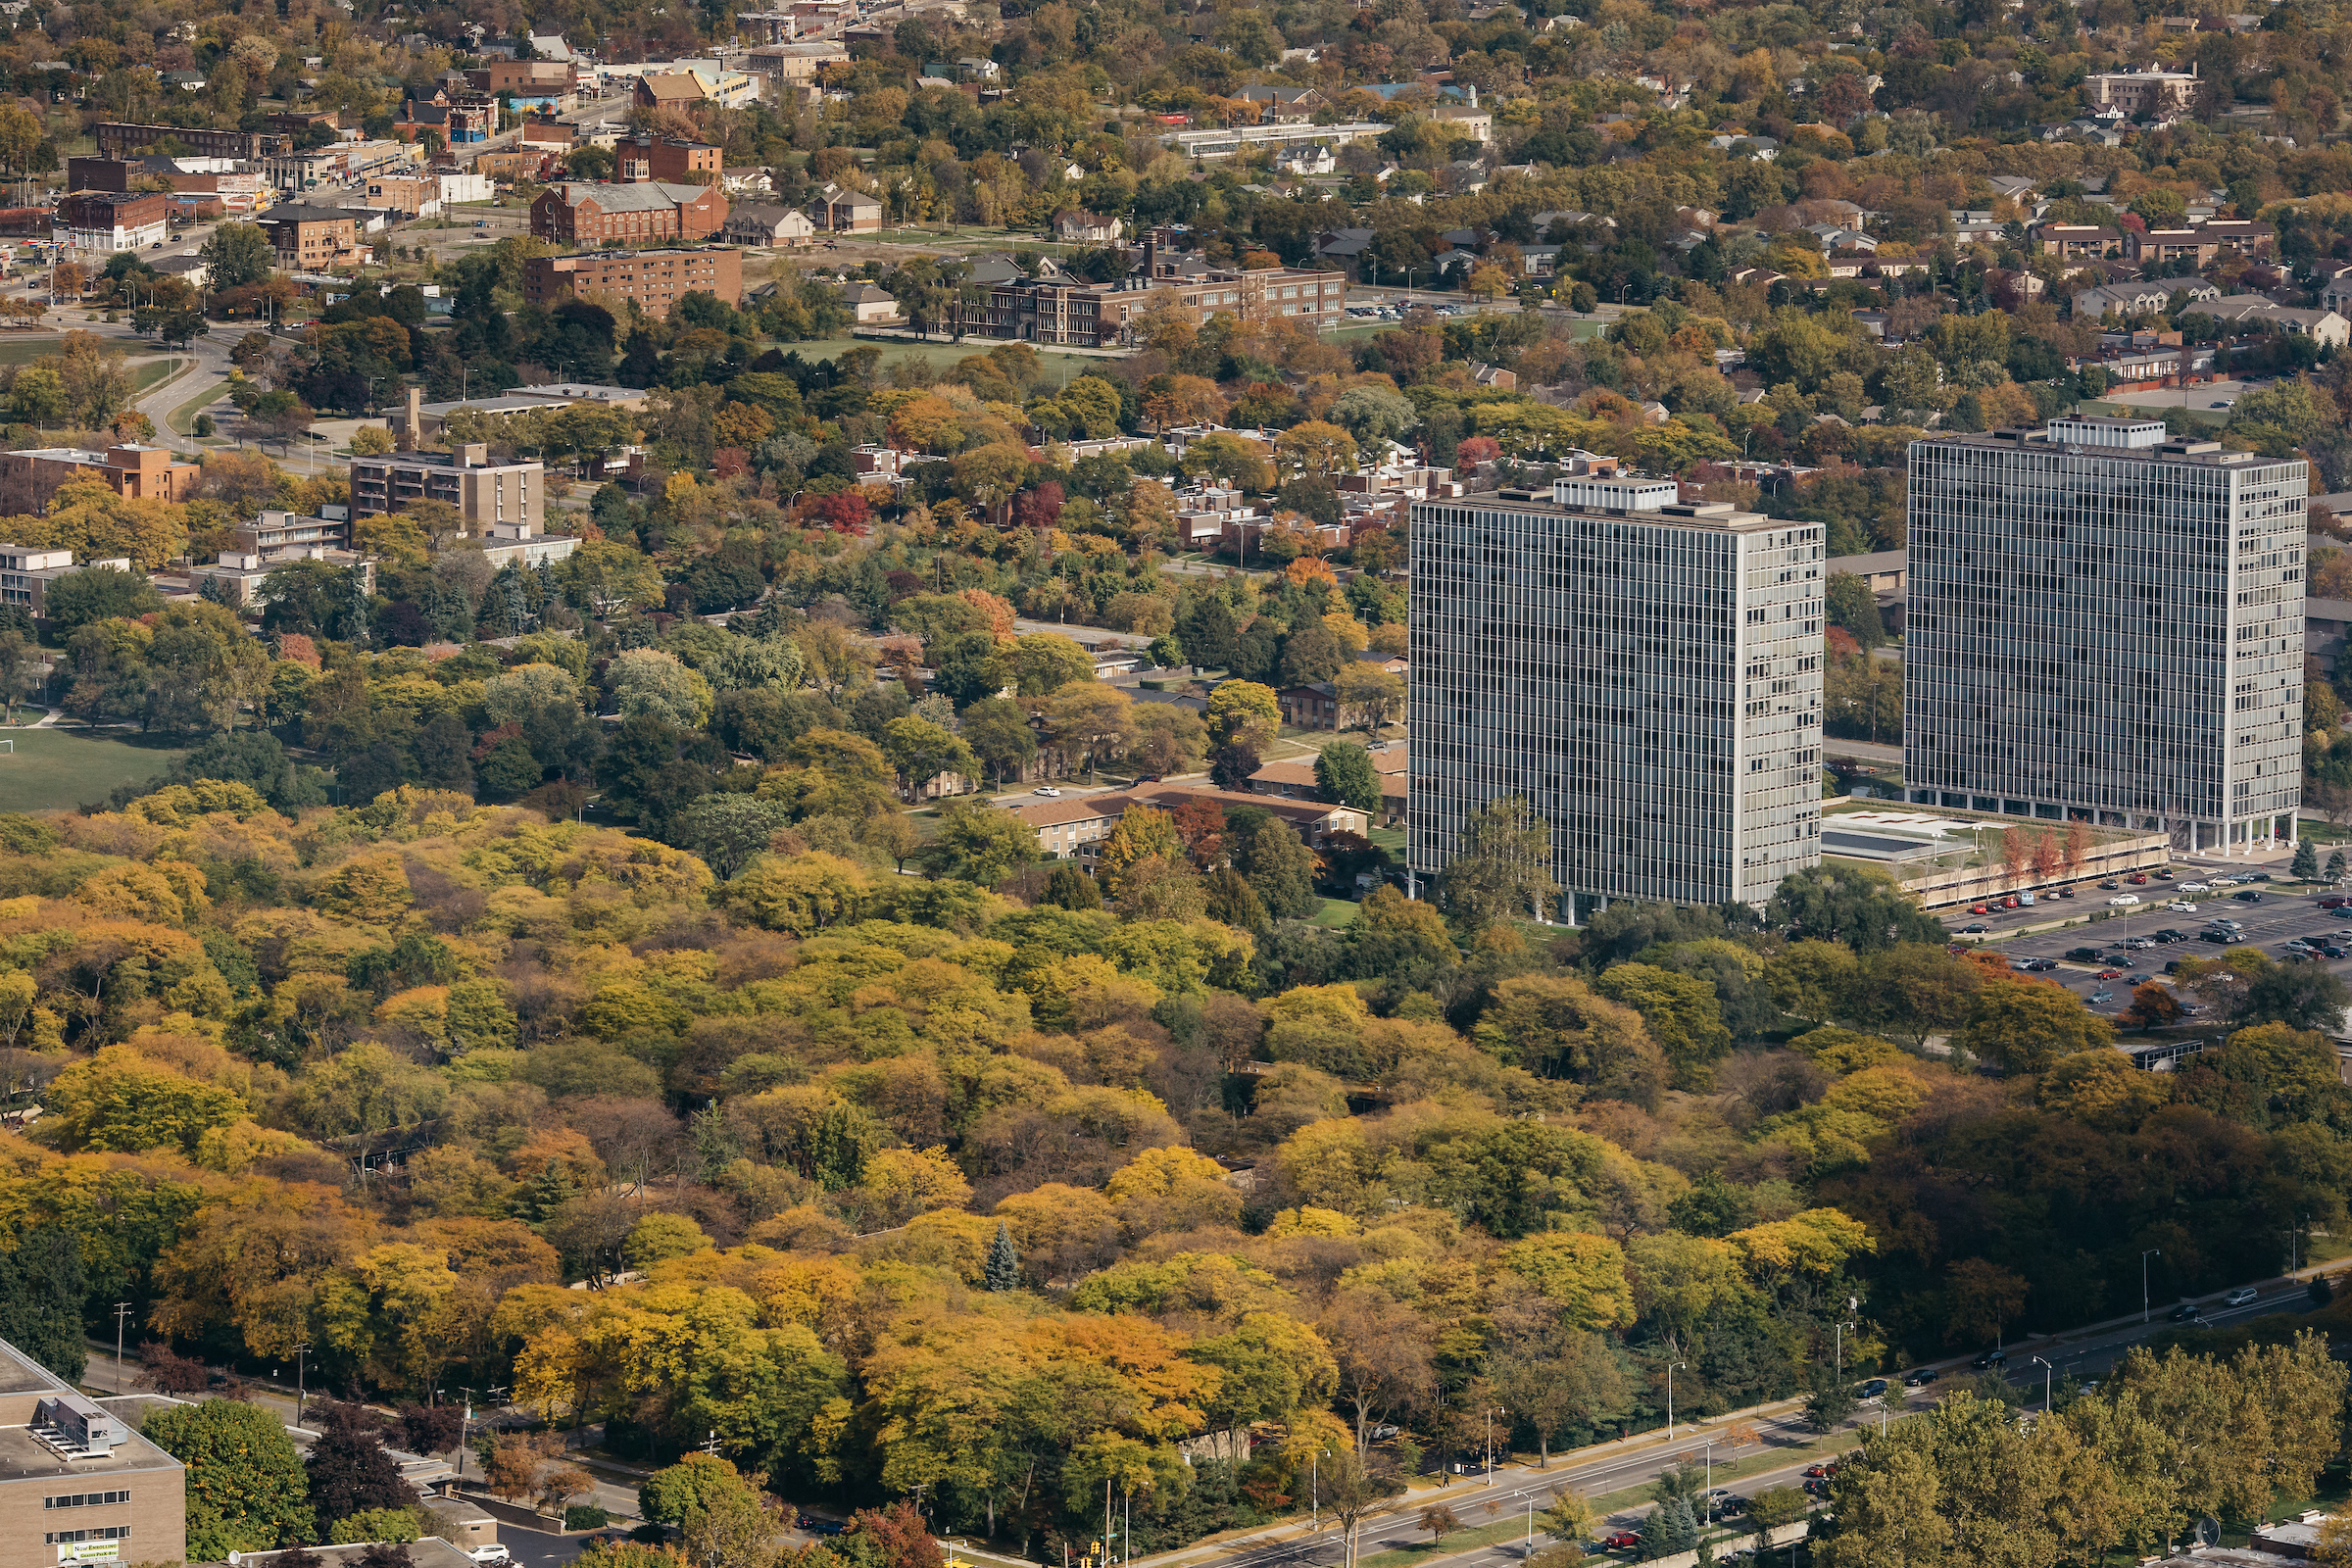 An aerial view of a large, tree-filled park. Two metal towers rise on the right side.